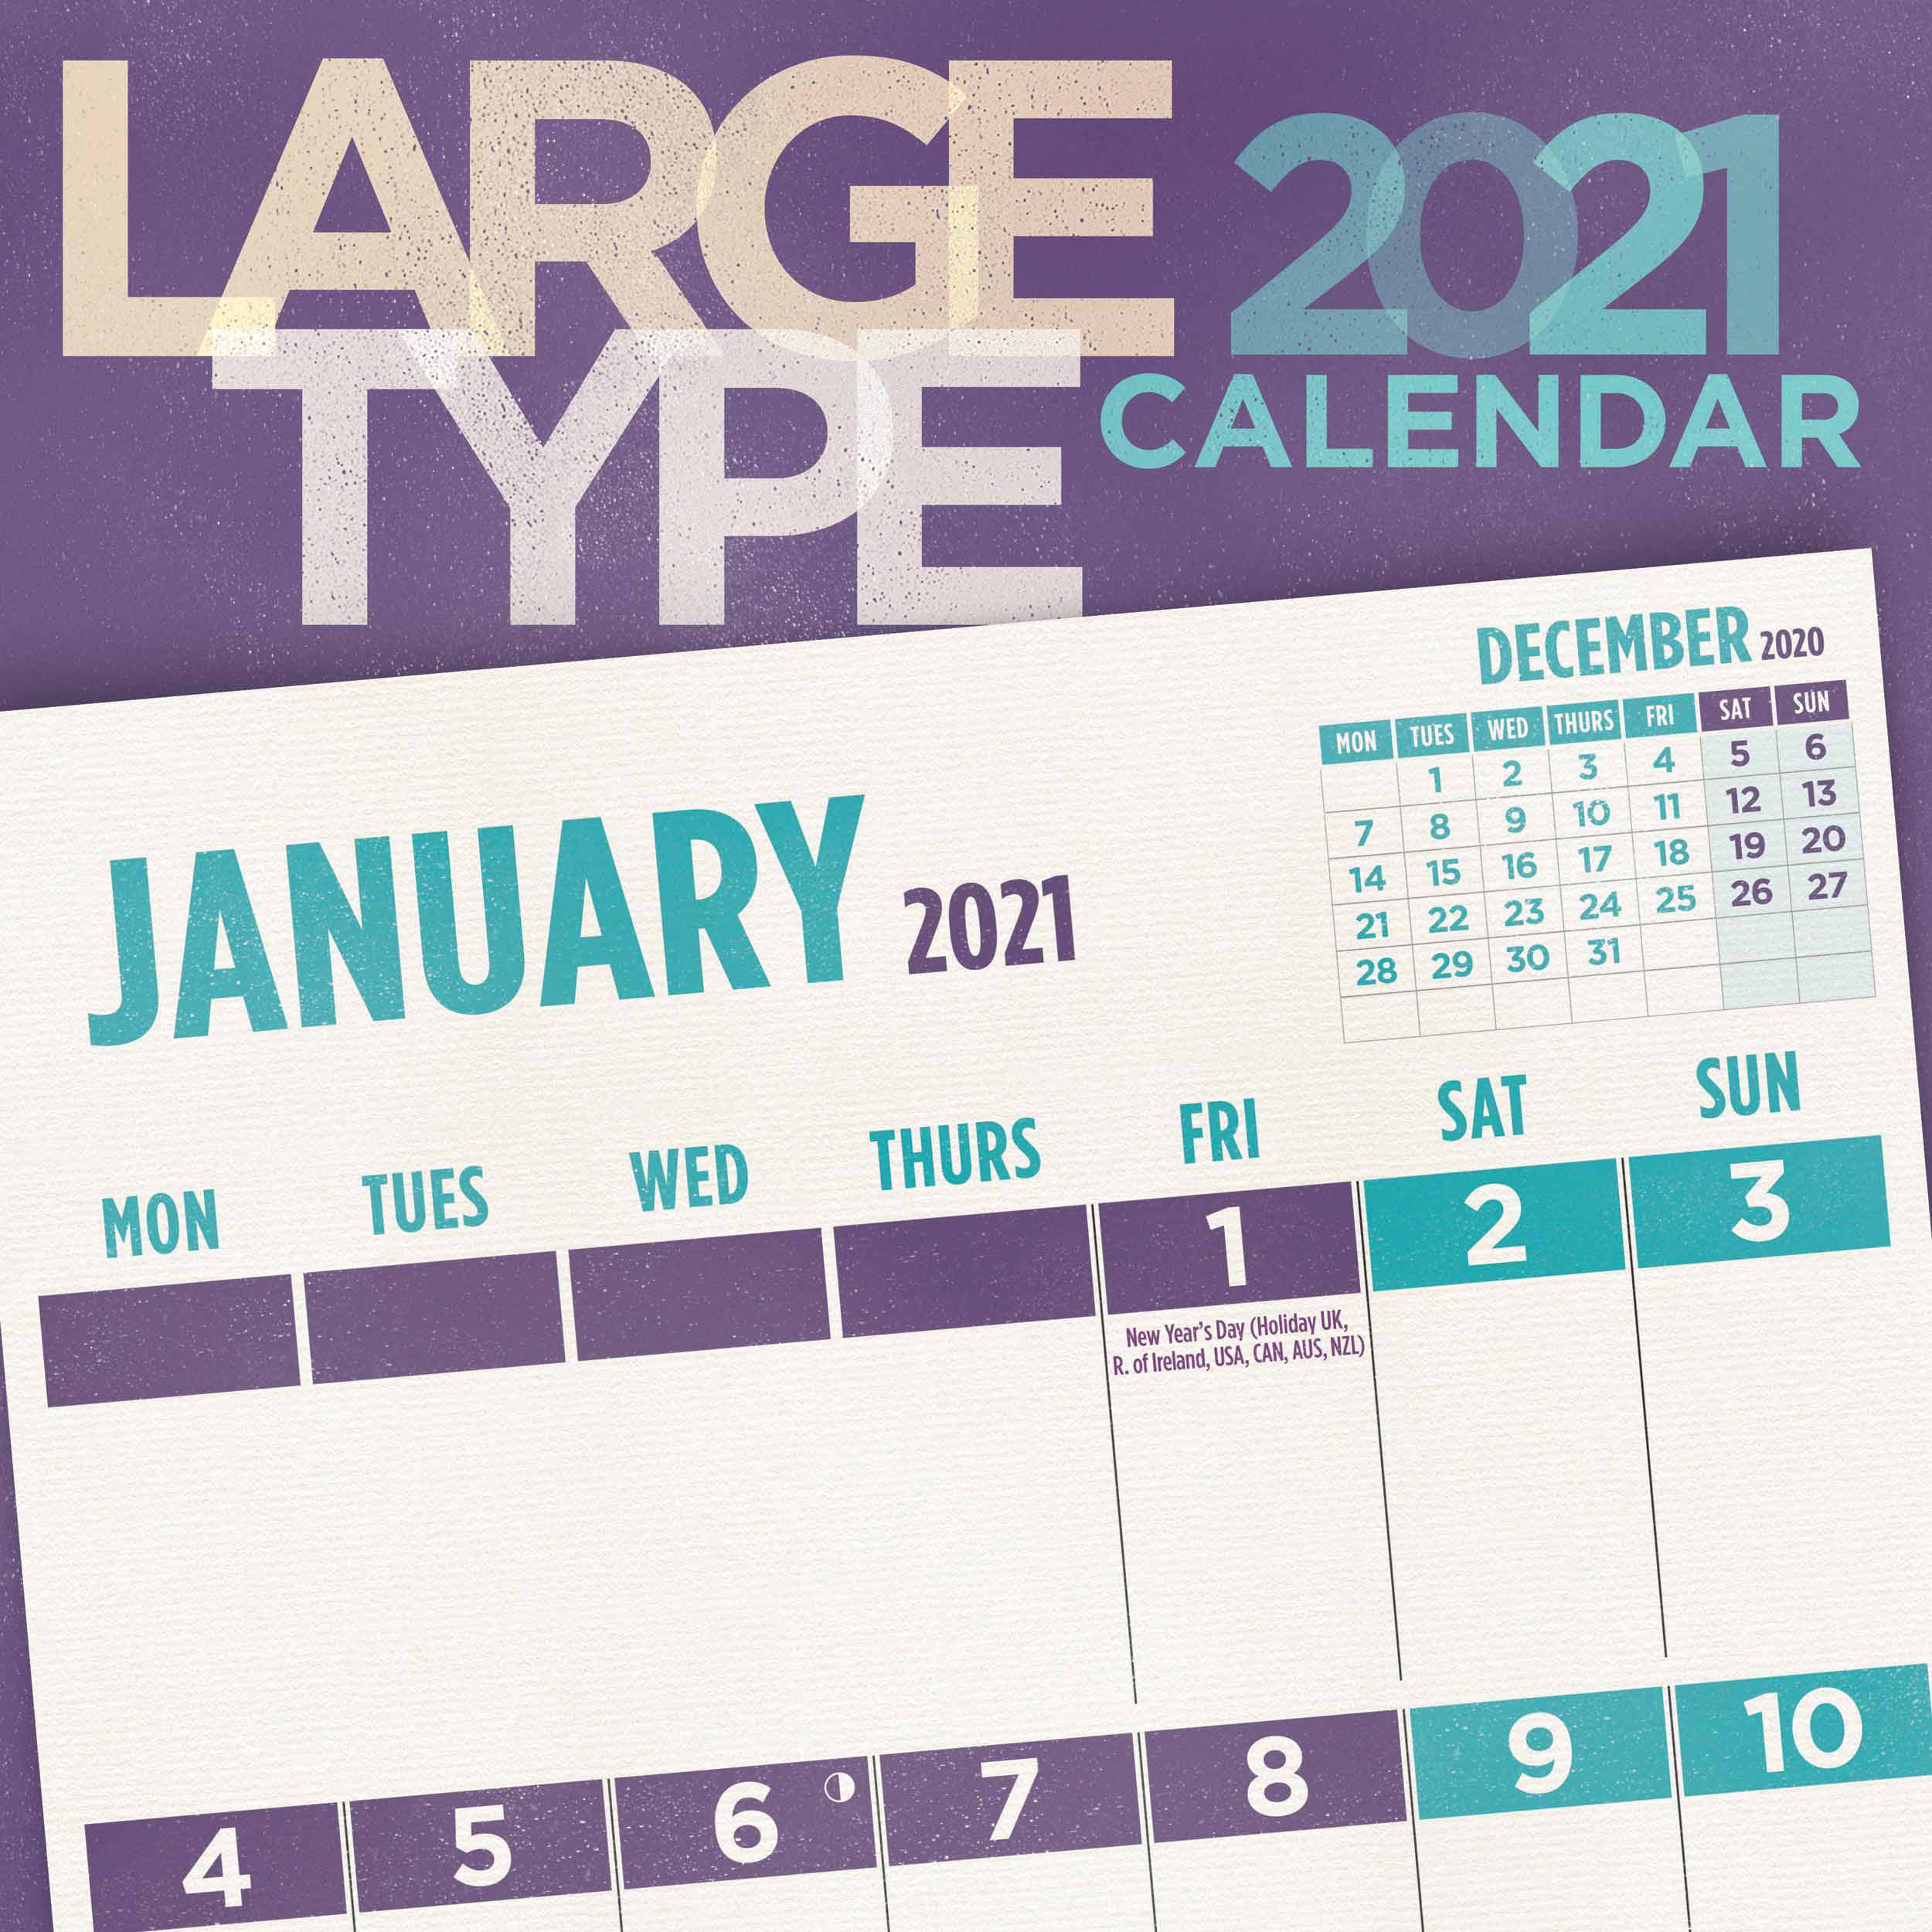 Large Type Calendar 2021 At Calendar Club